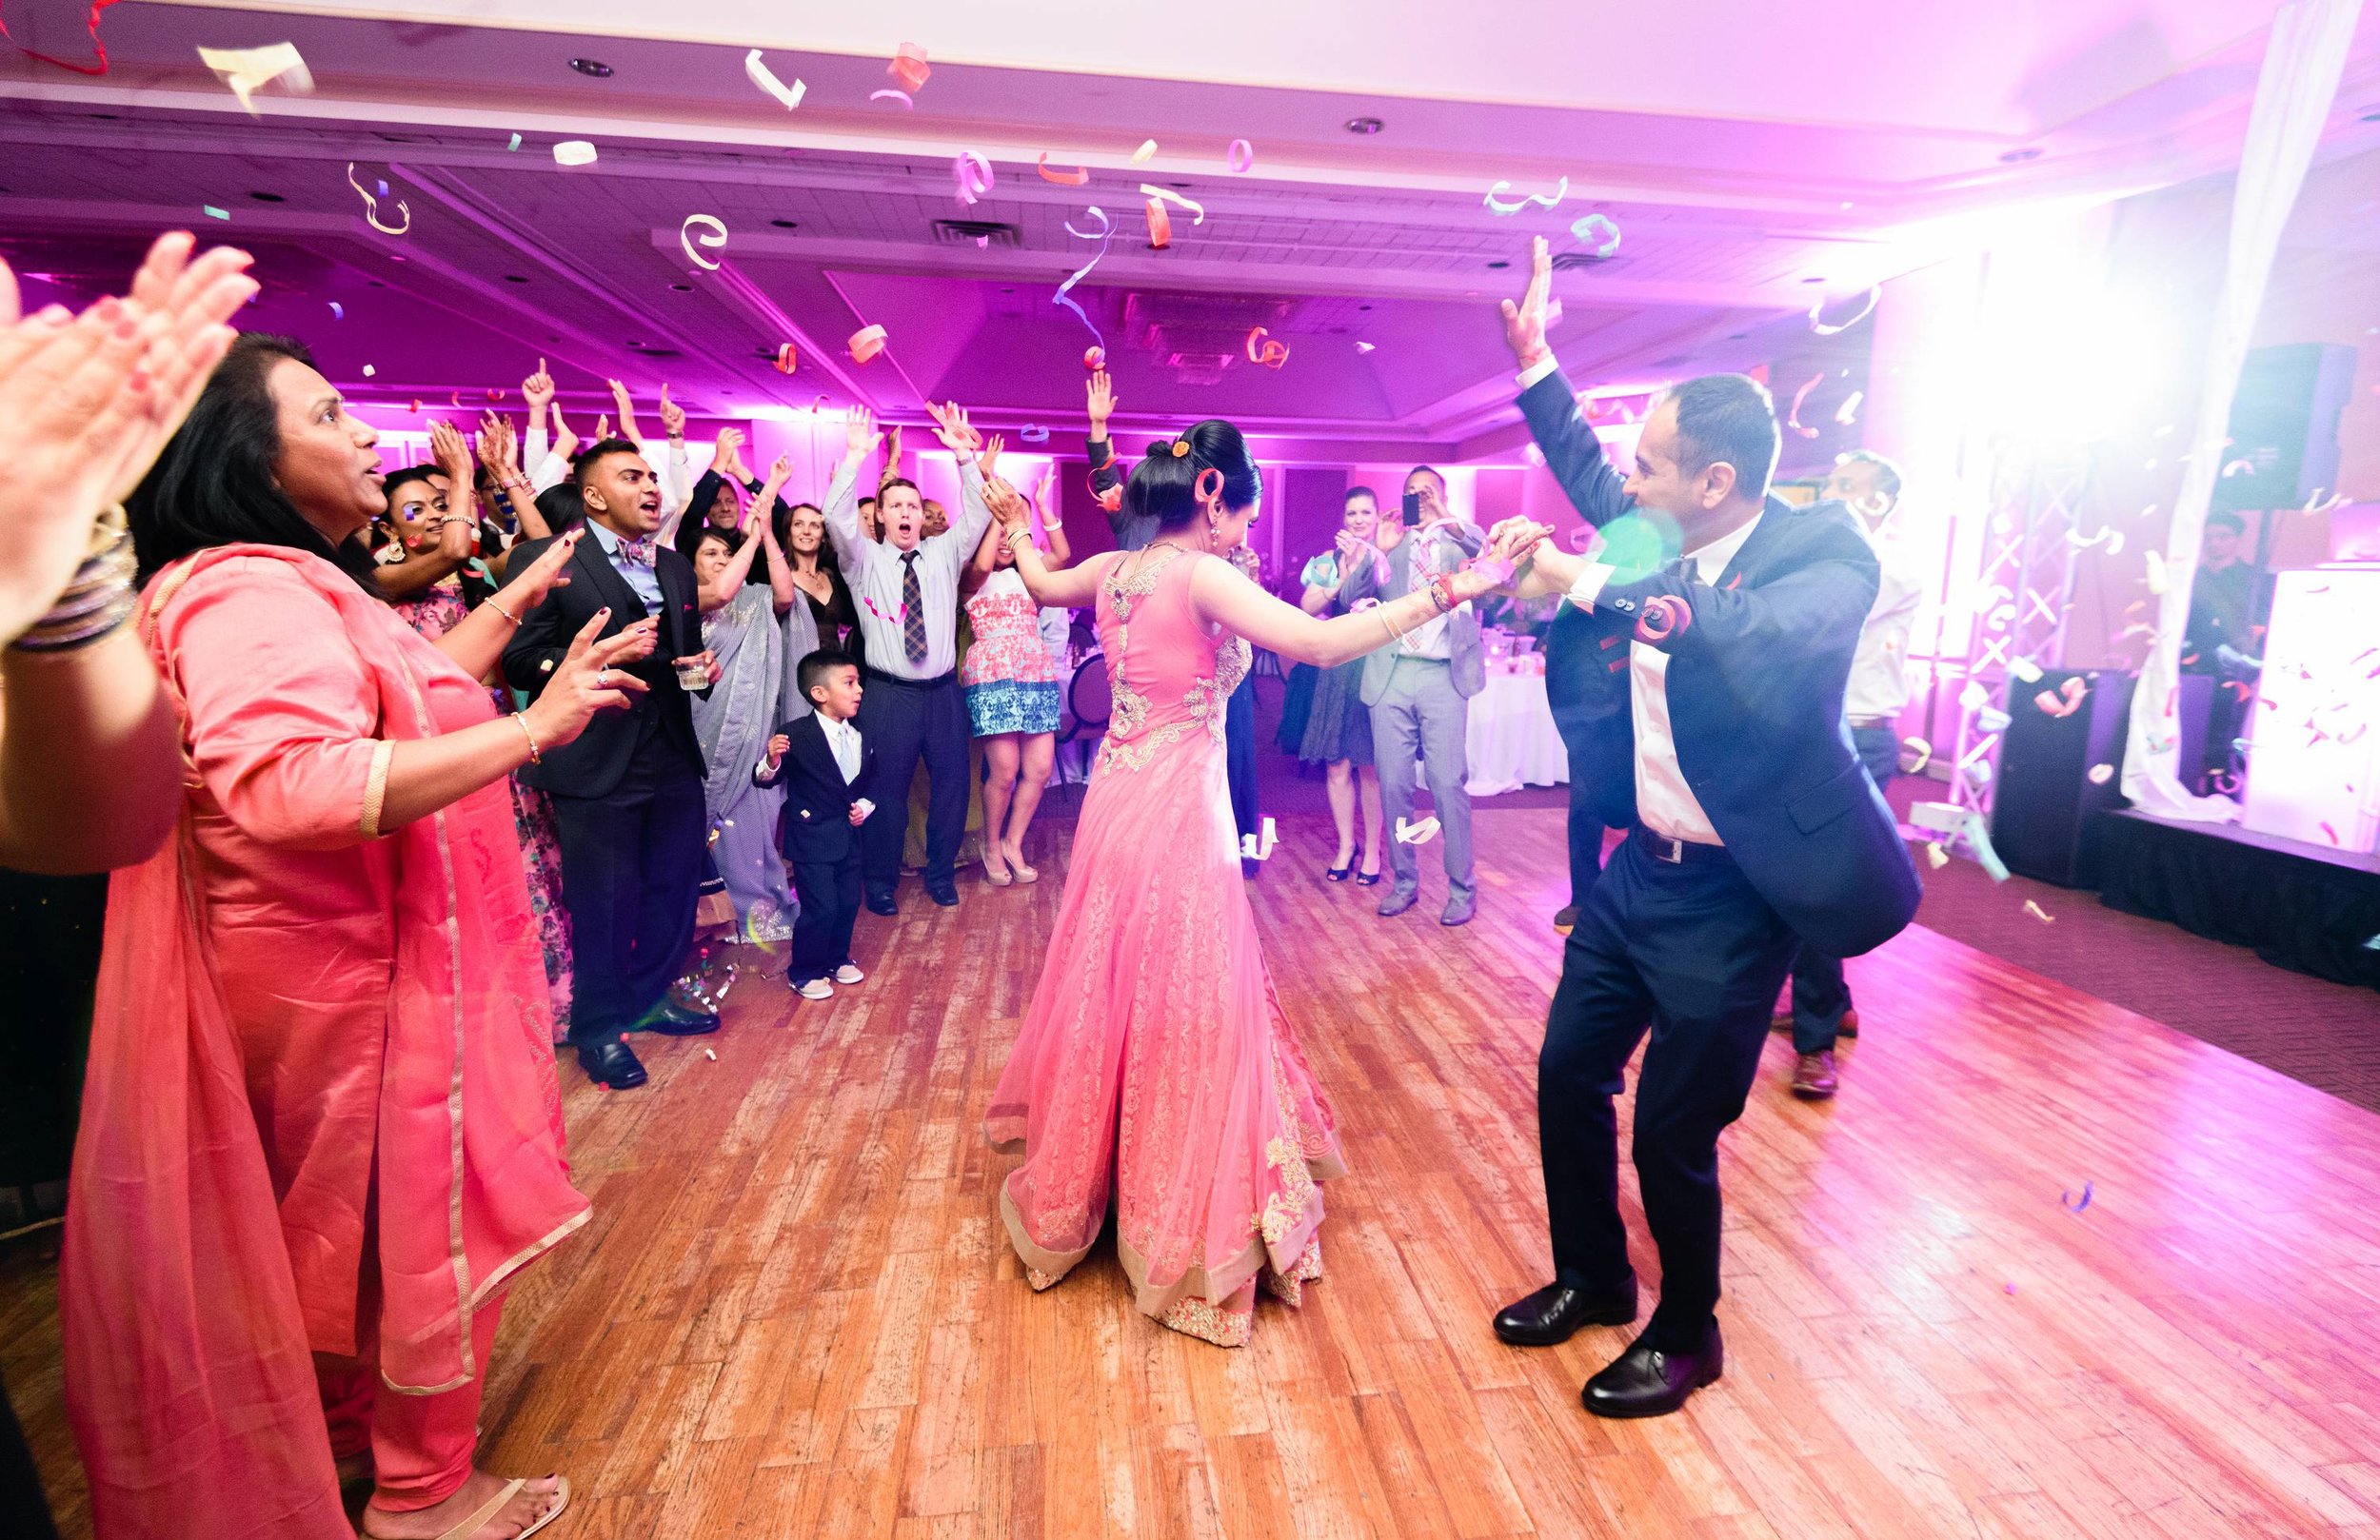 the guests poured in on the dance floor after the bride and groom's first dance at their reception